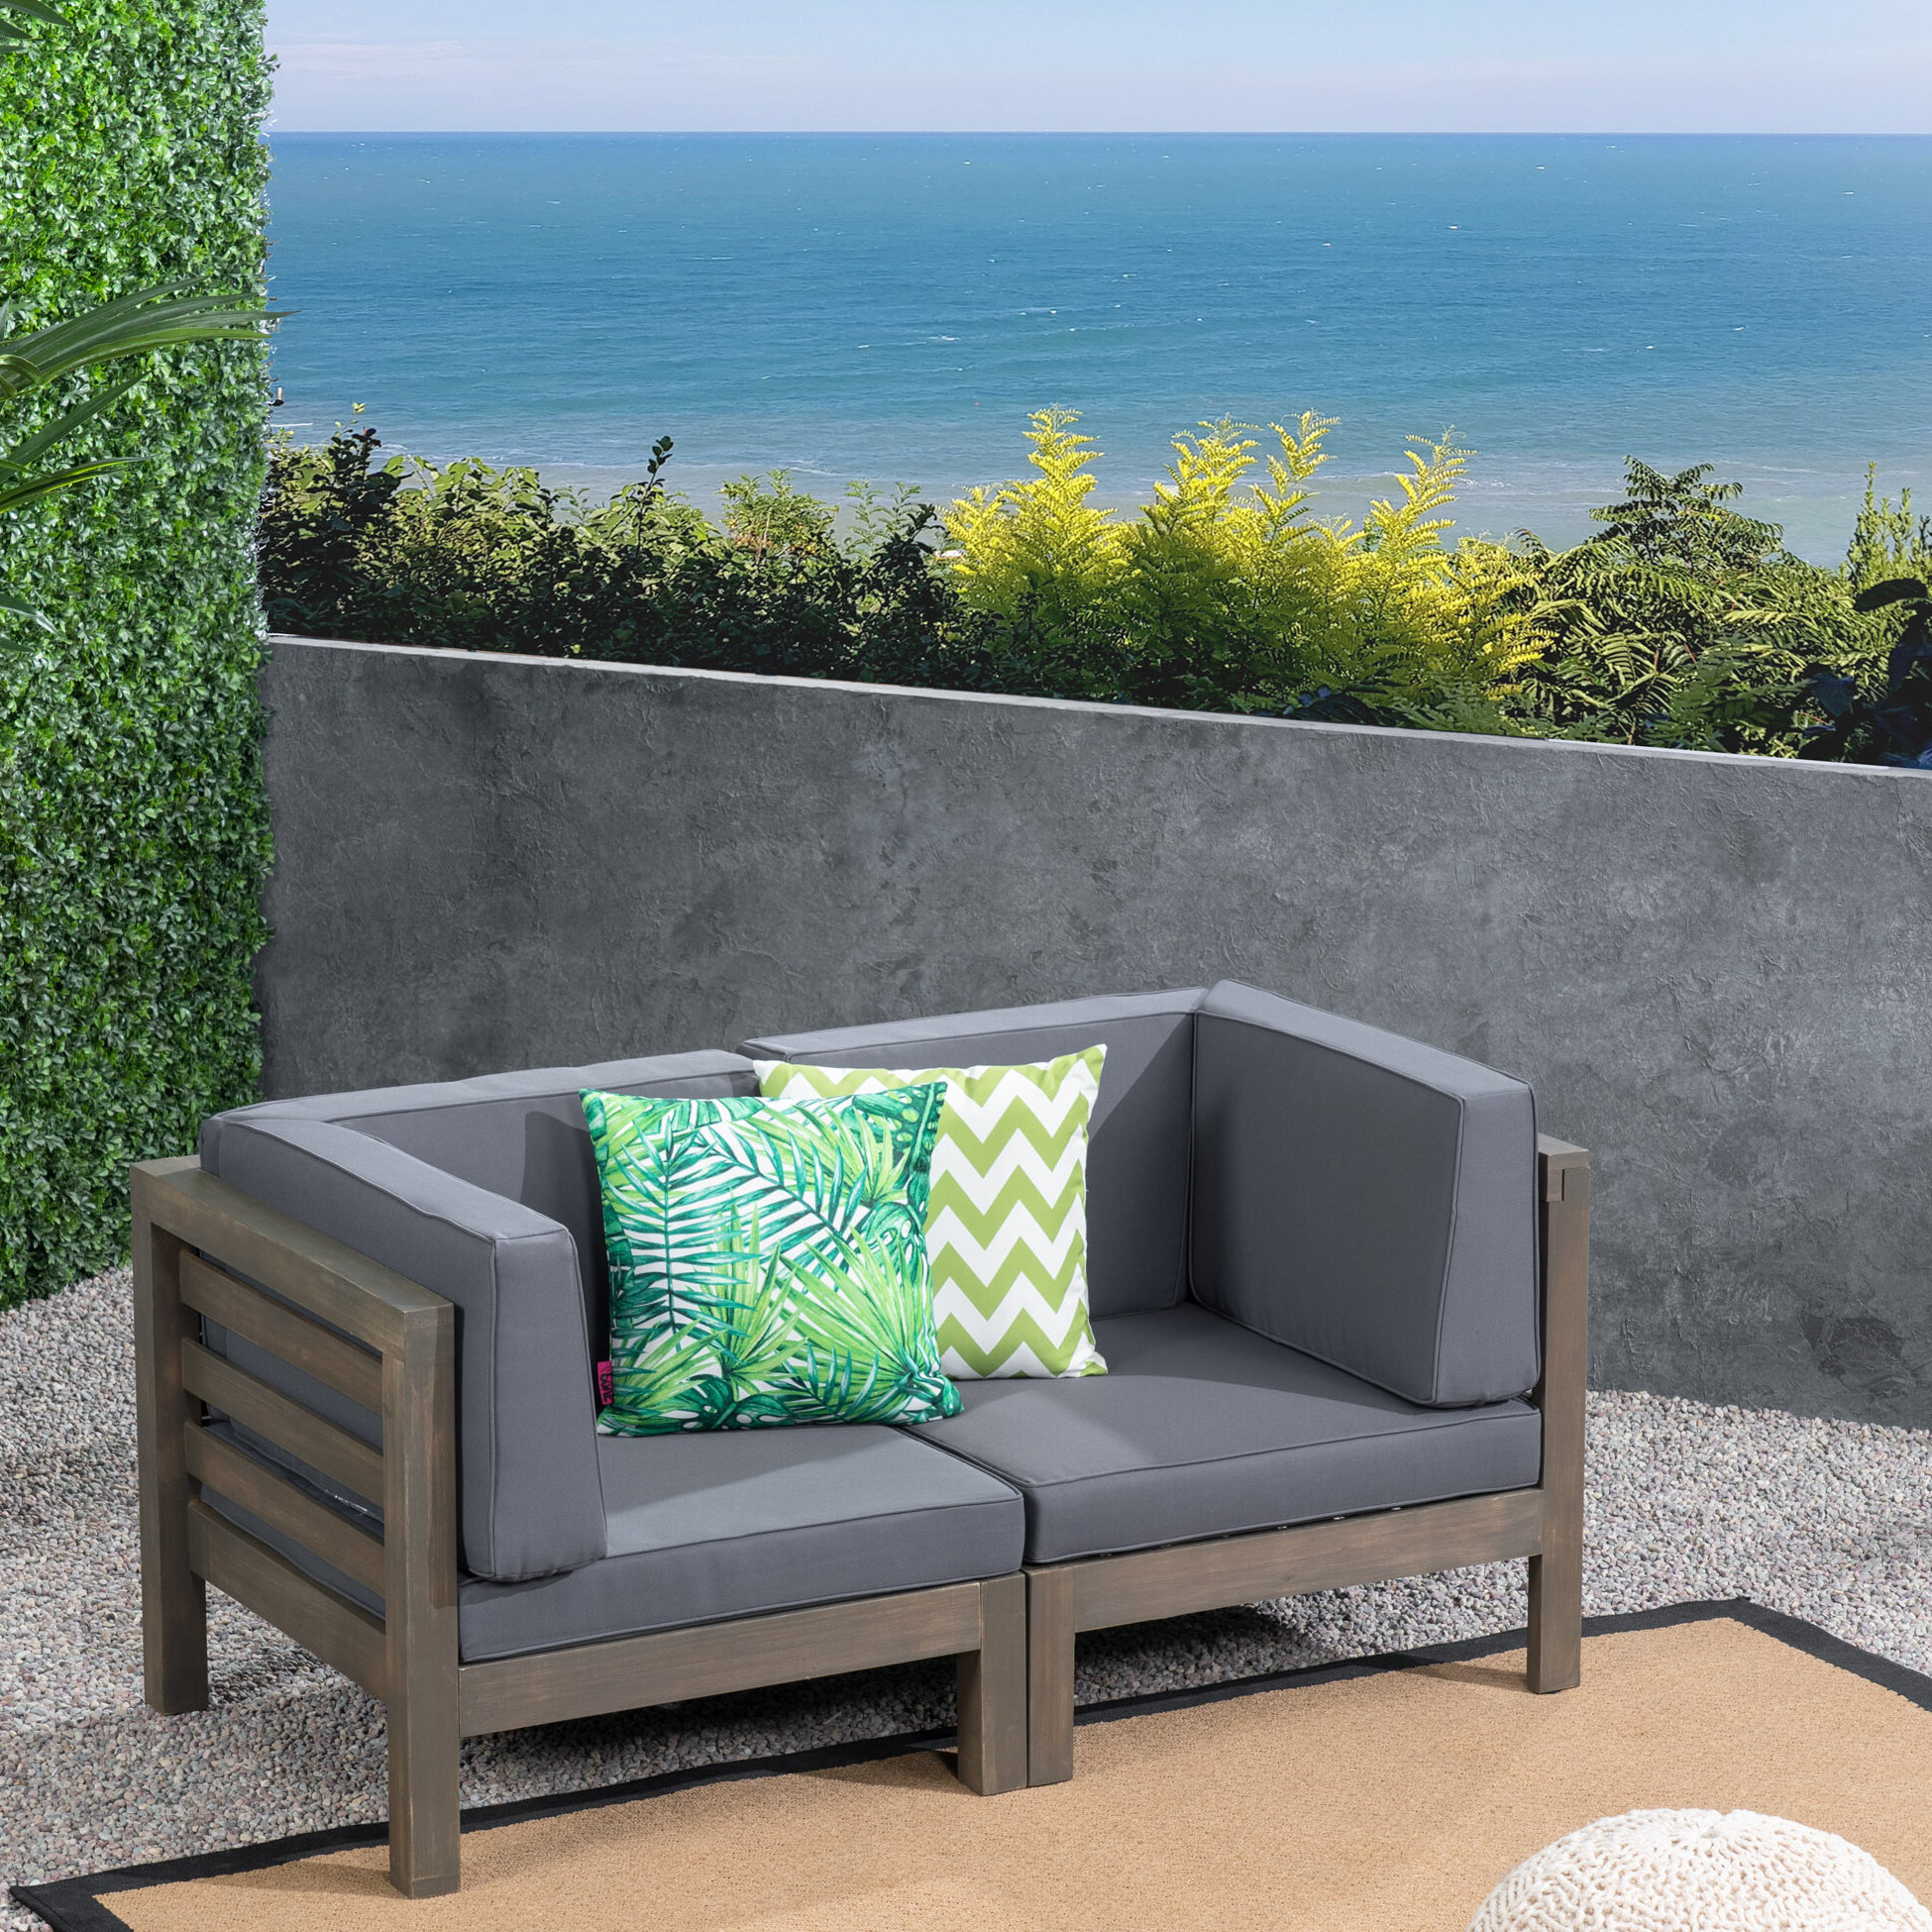 Pantano Loveseats With Cushions Within Fashionable Seaham Loveseat With Cushions (View 18 of 20)